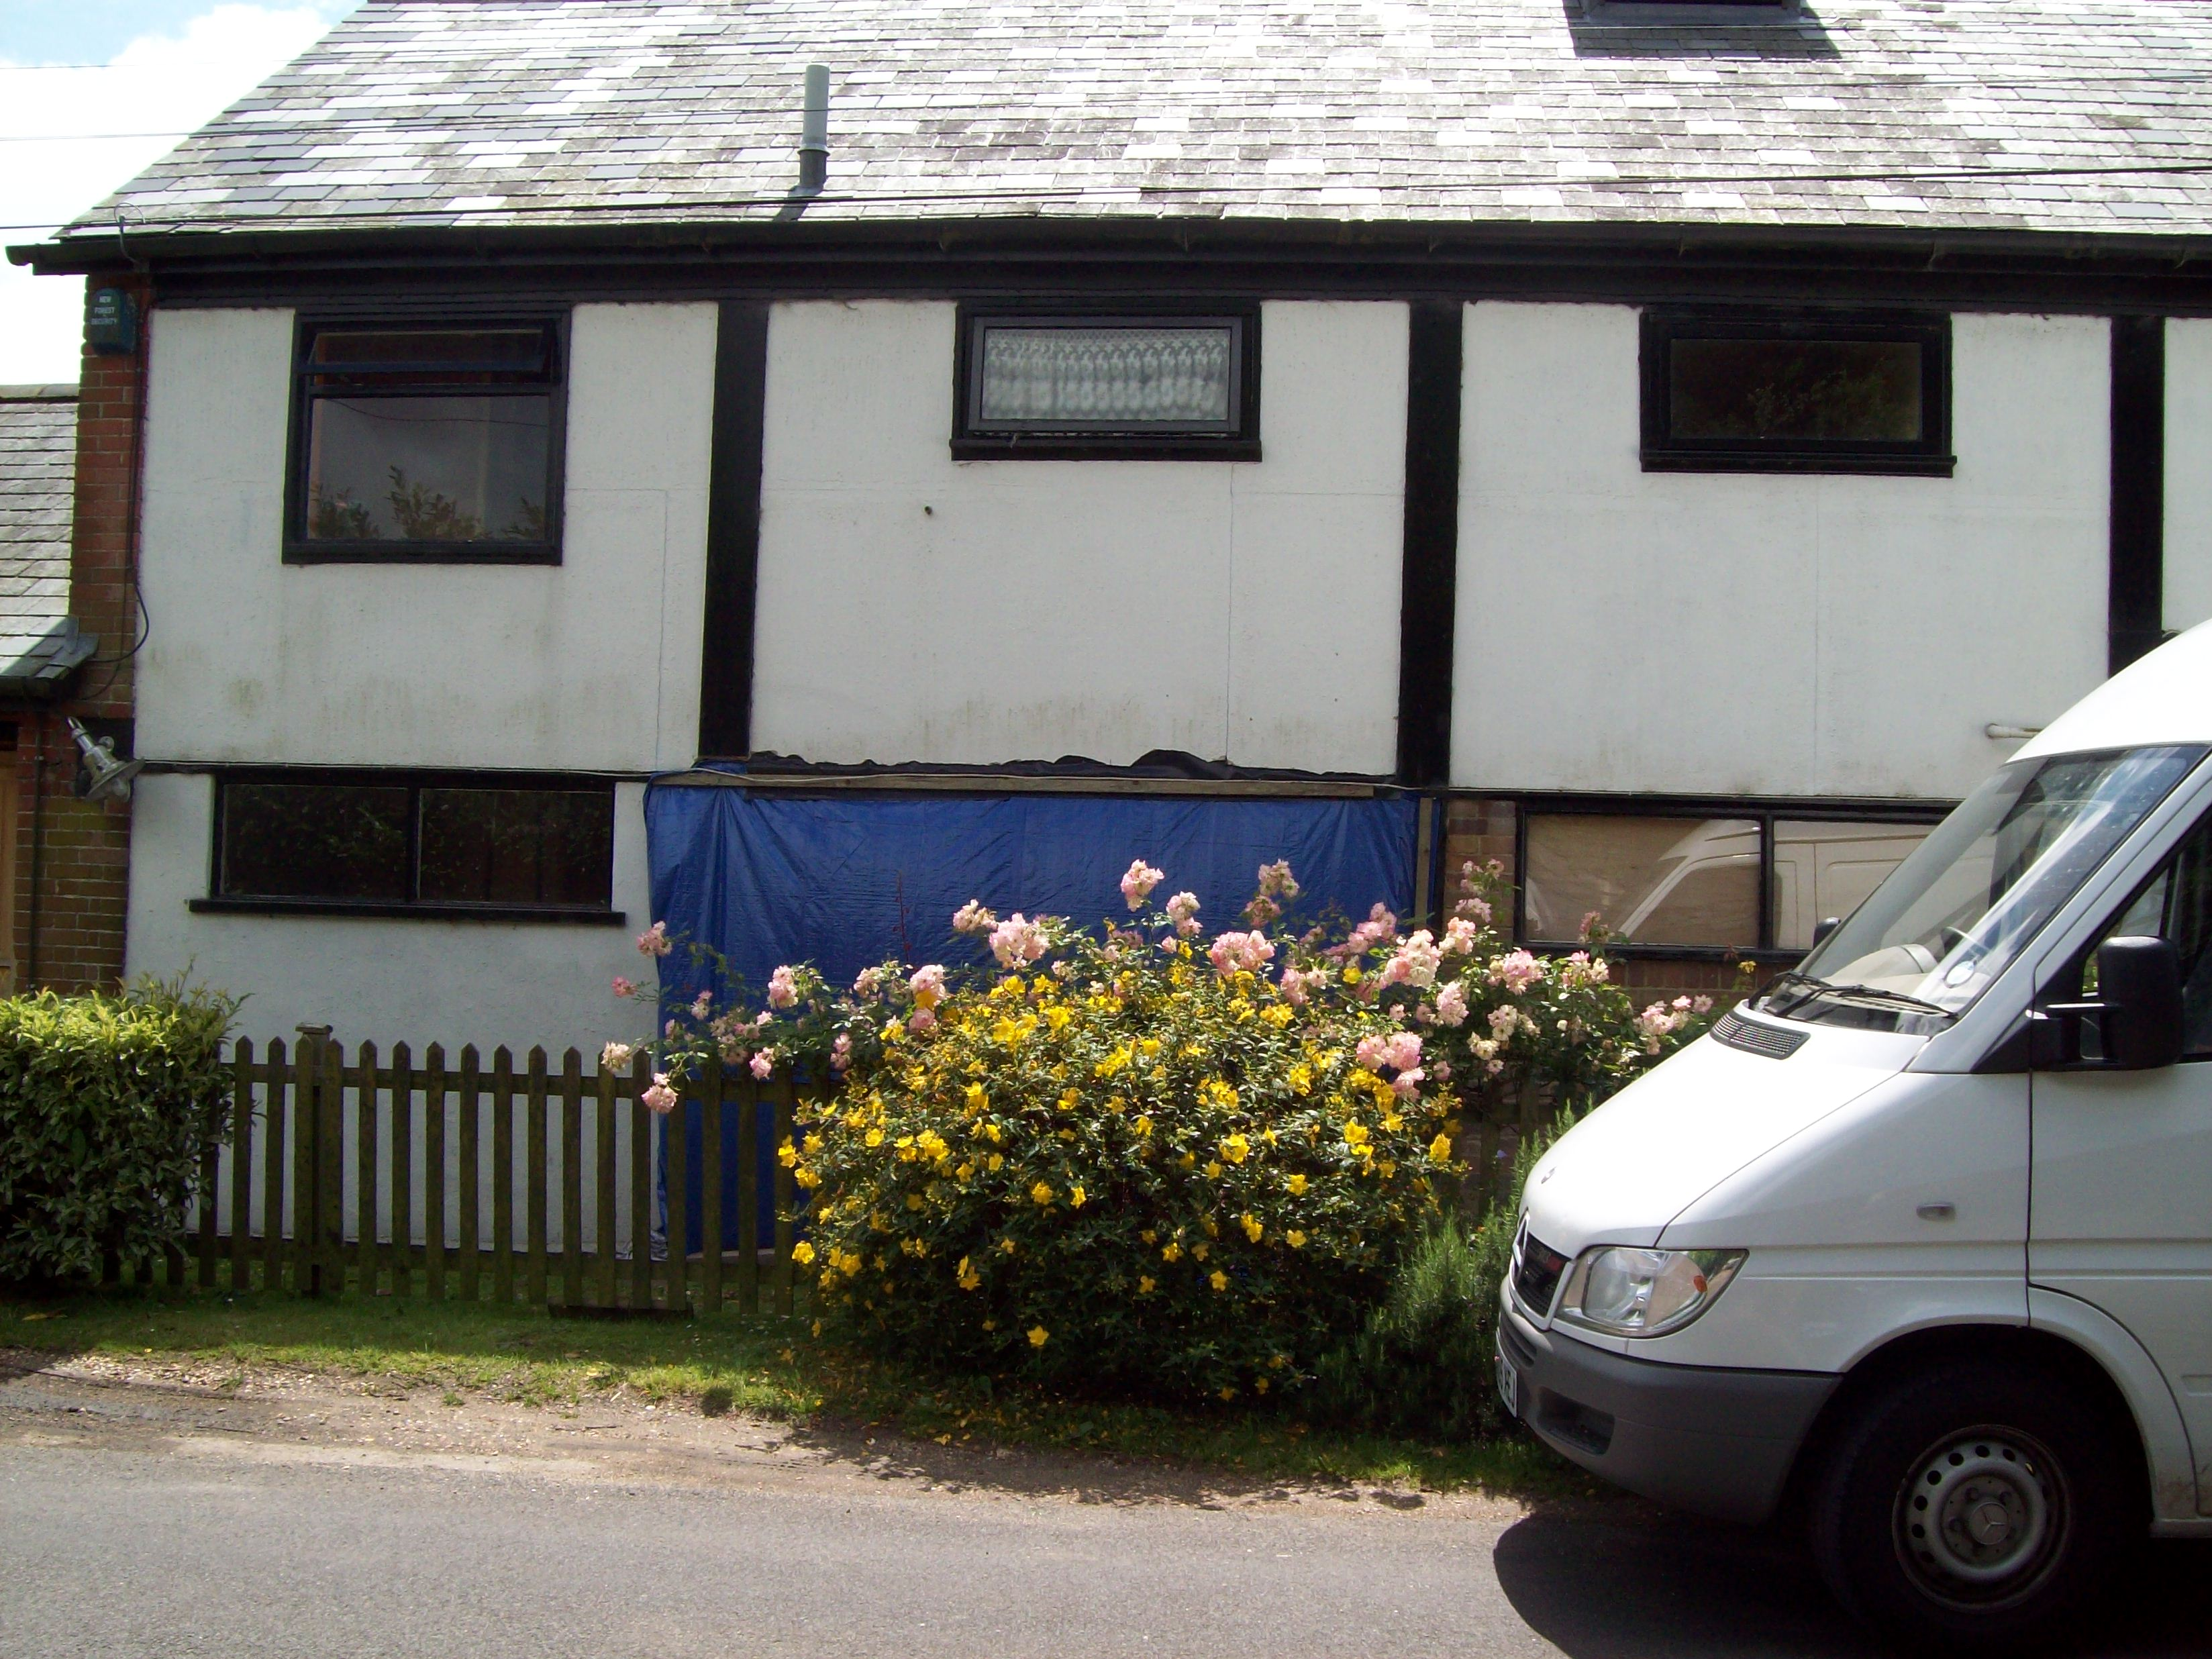 Removal of the old frontage begins